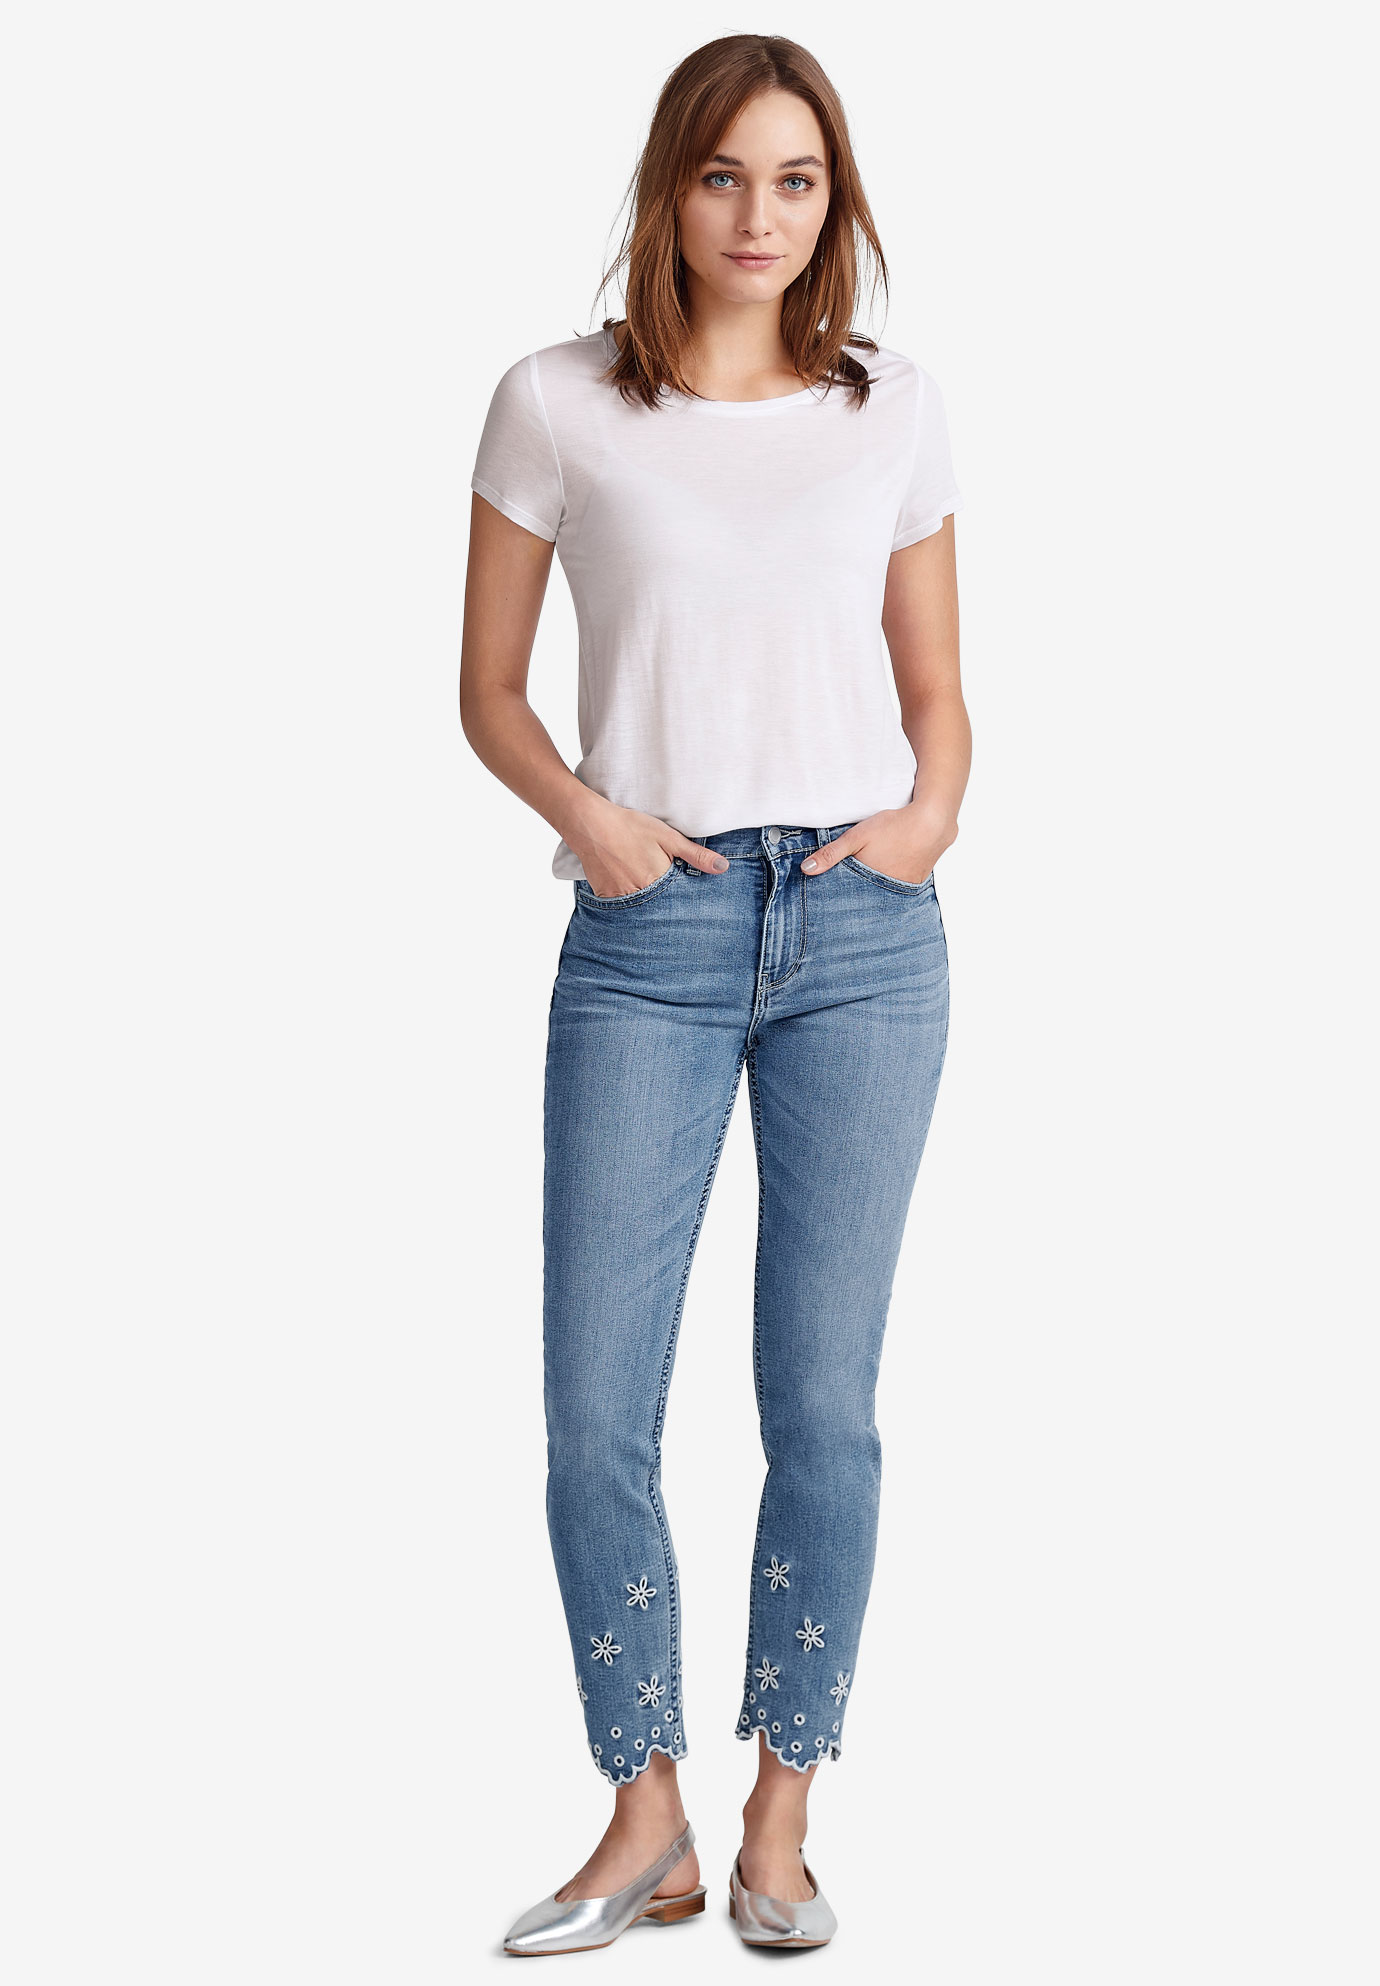 817ac3c81c1 Embroidered Scallop-Hem Jeans by ellos®